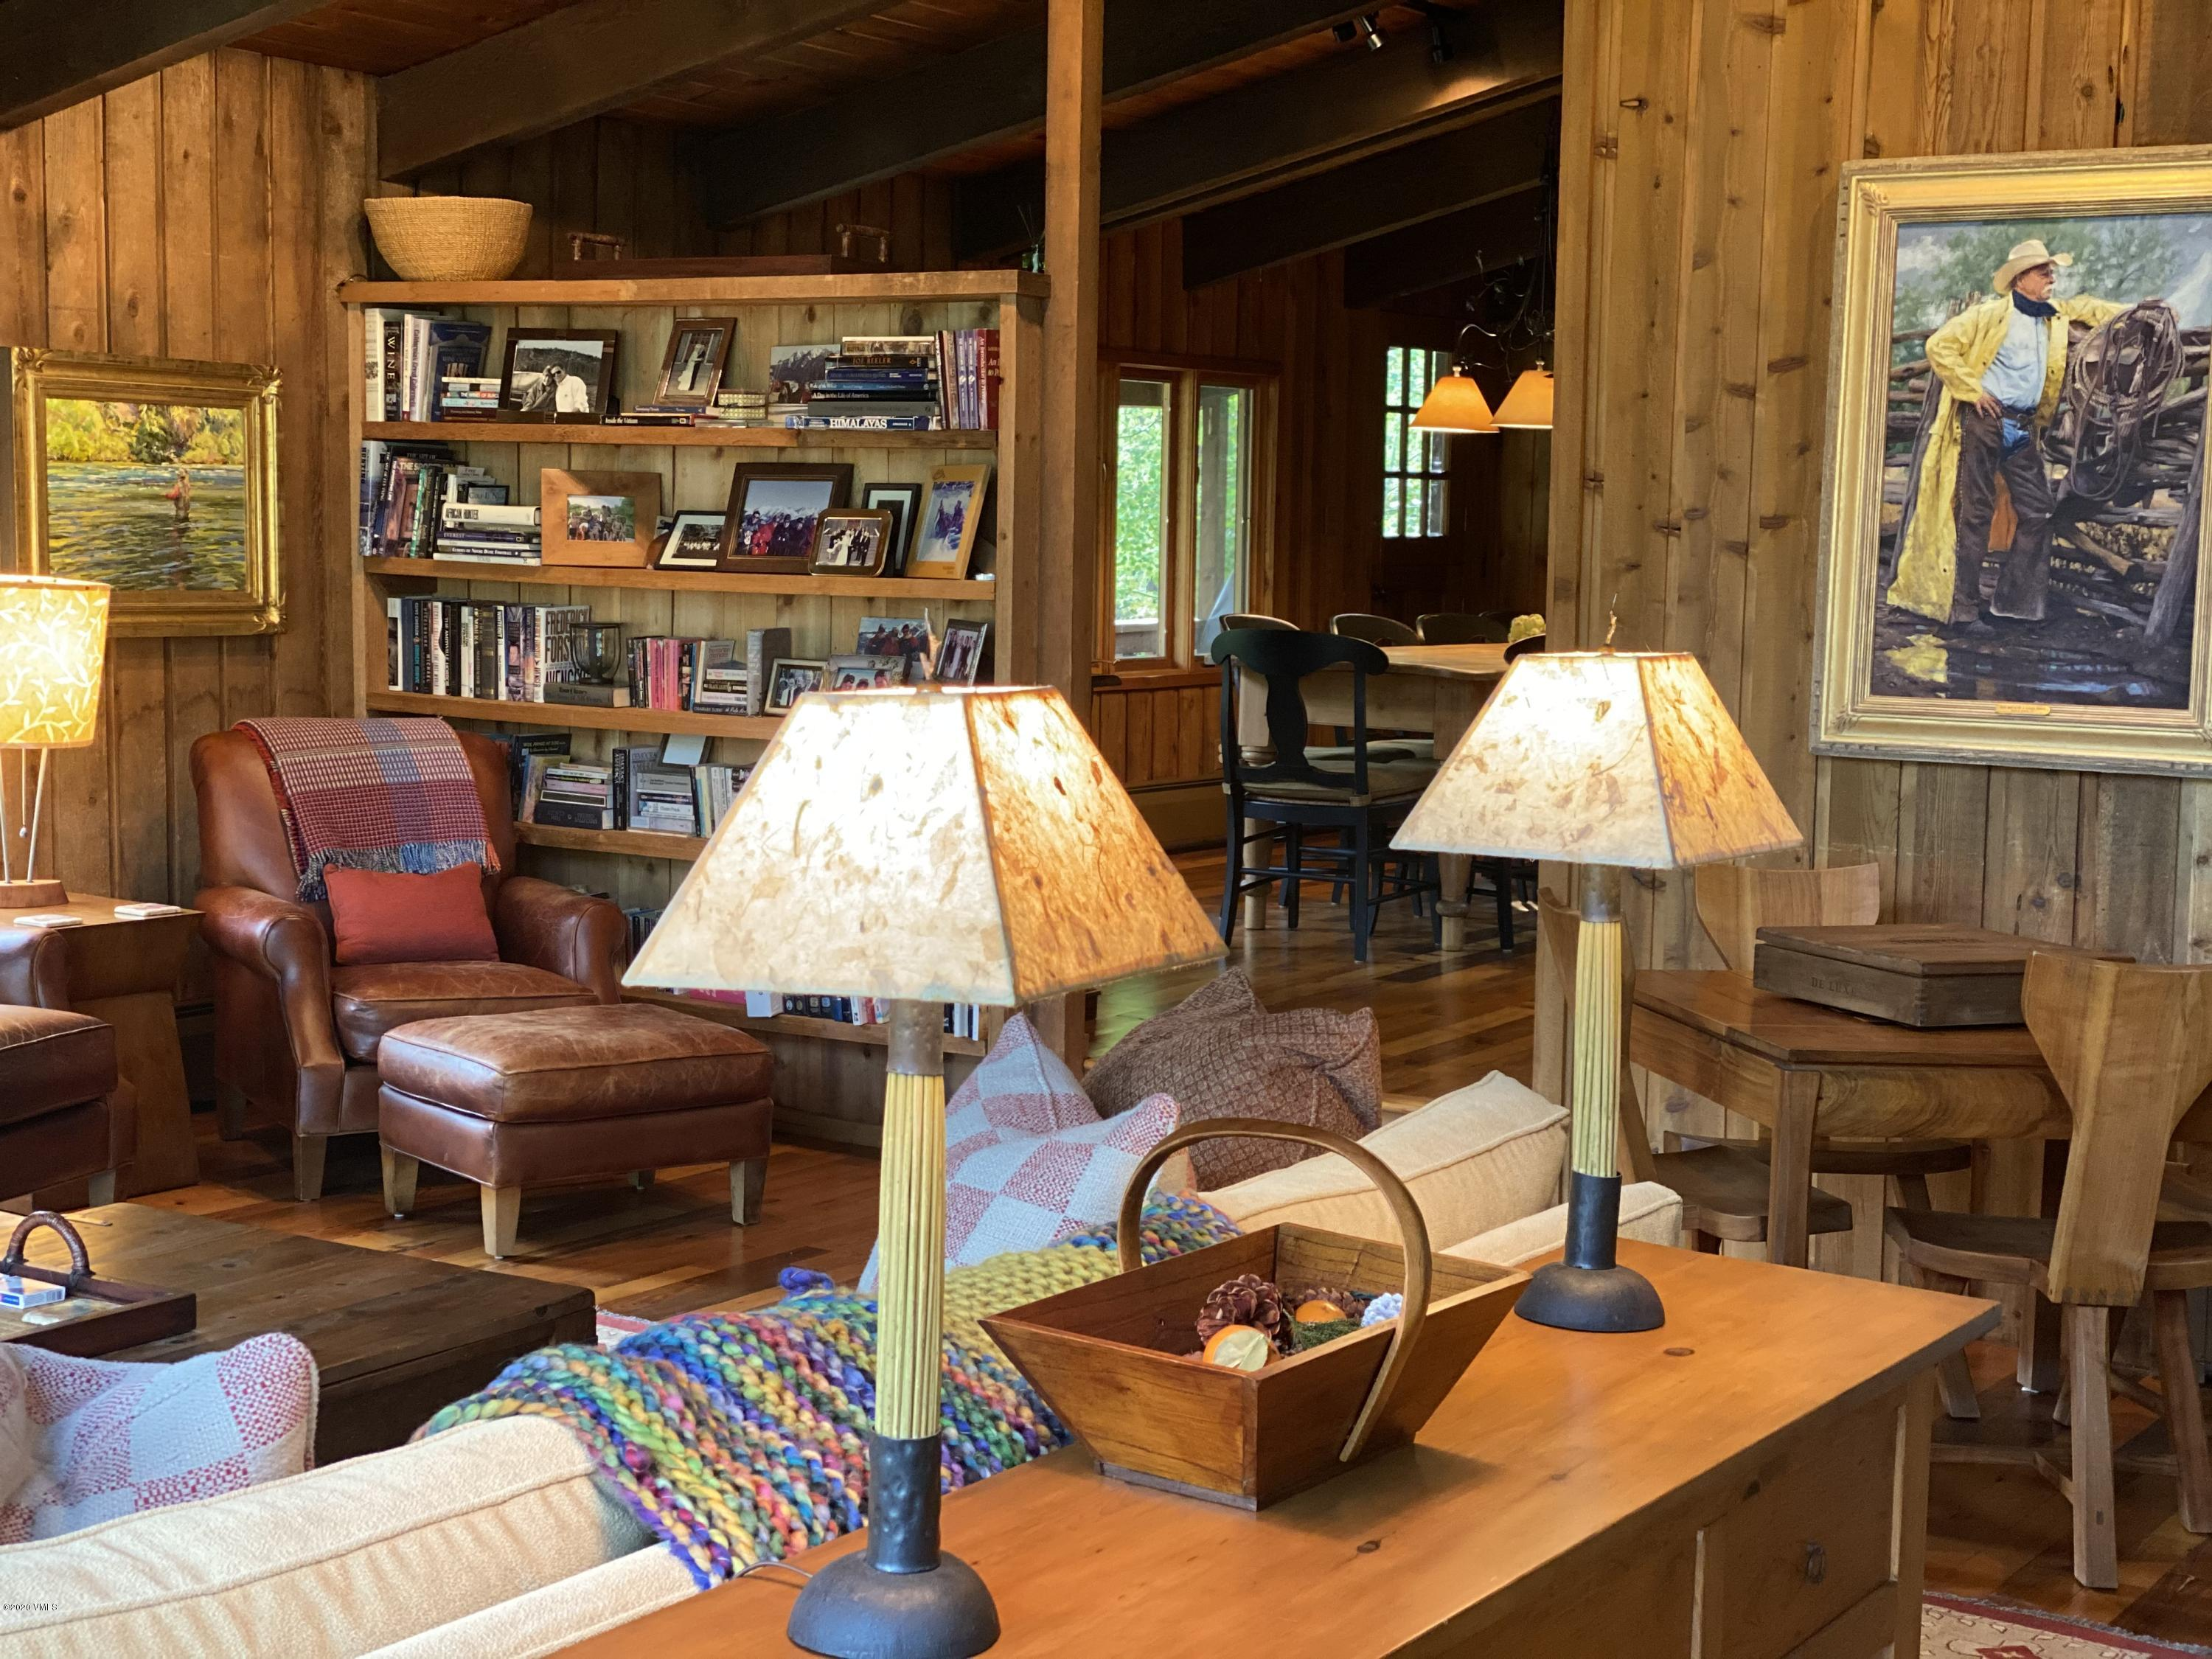 A Gore Creek fronting East Vail Home with a charming western feel with commanding western views towards Bald Mountain and surrounding forest land.